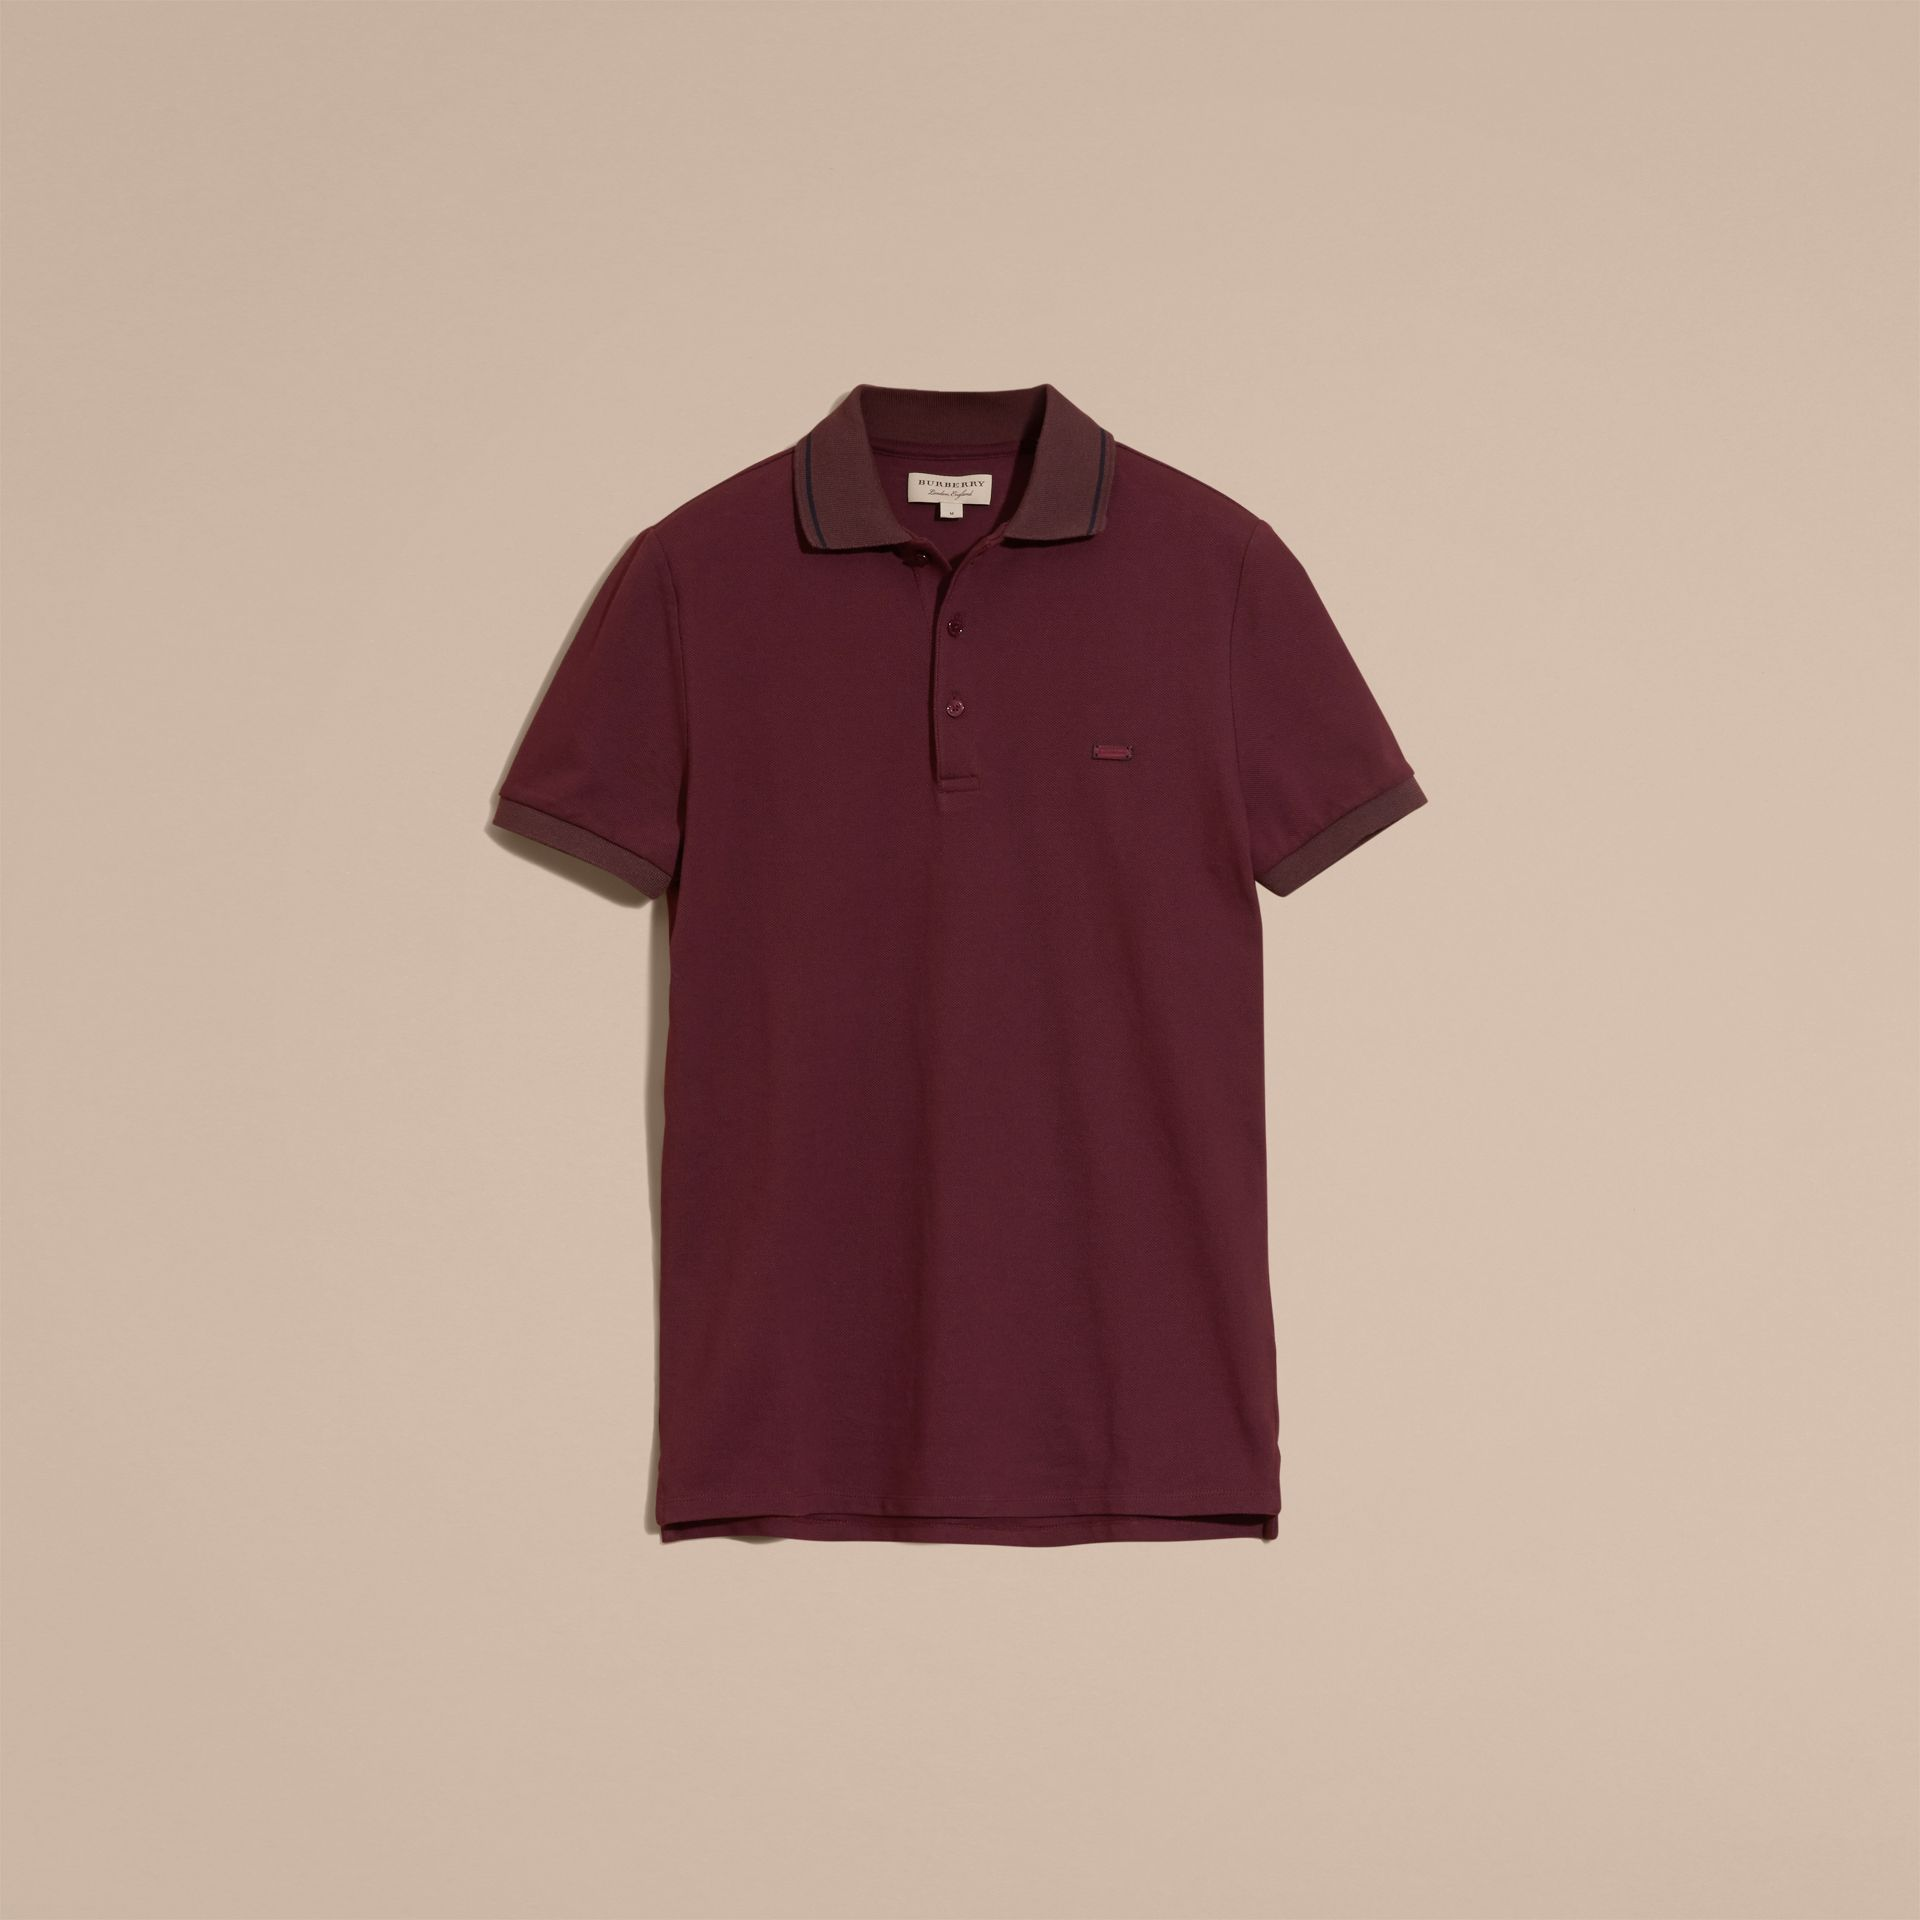 Burgundy red/black Contrast Trim Cotton Piqué Polo Shirt Burgundy Red/black - gallery image 4